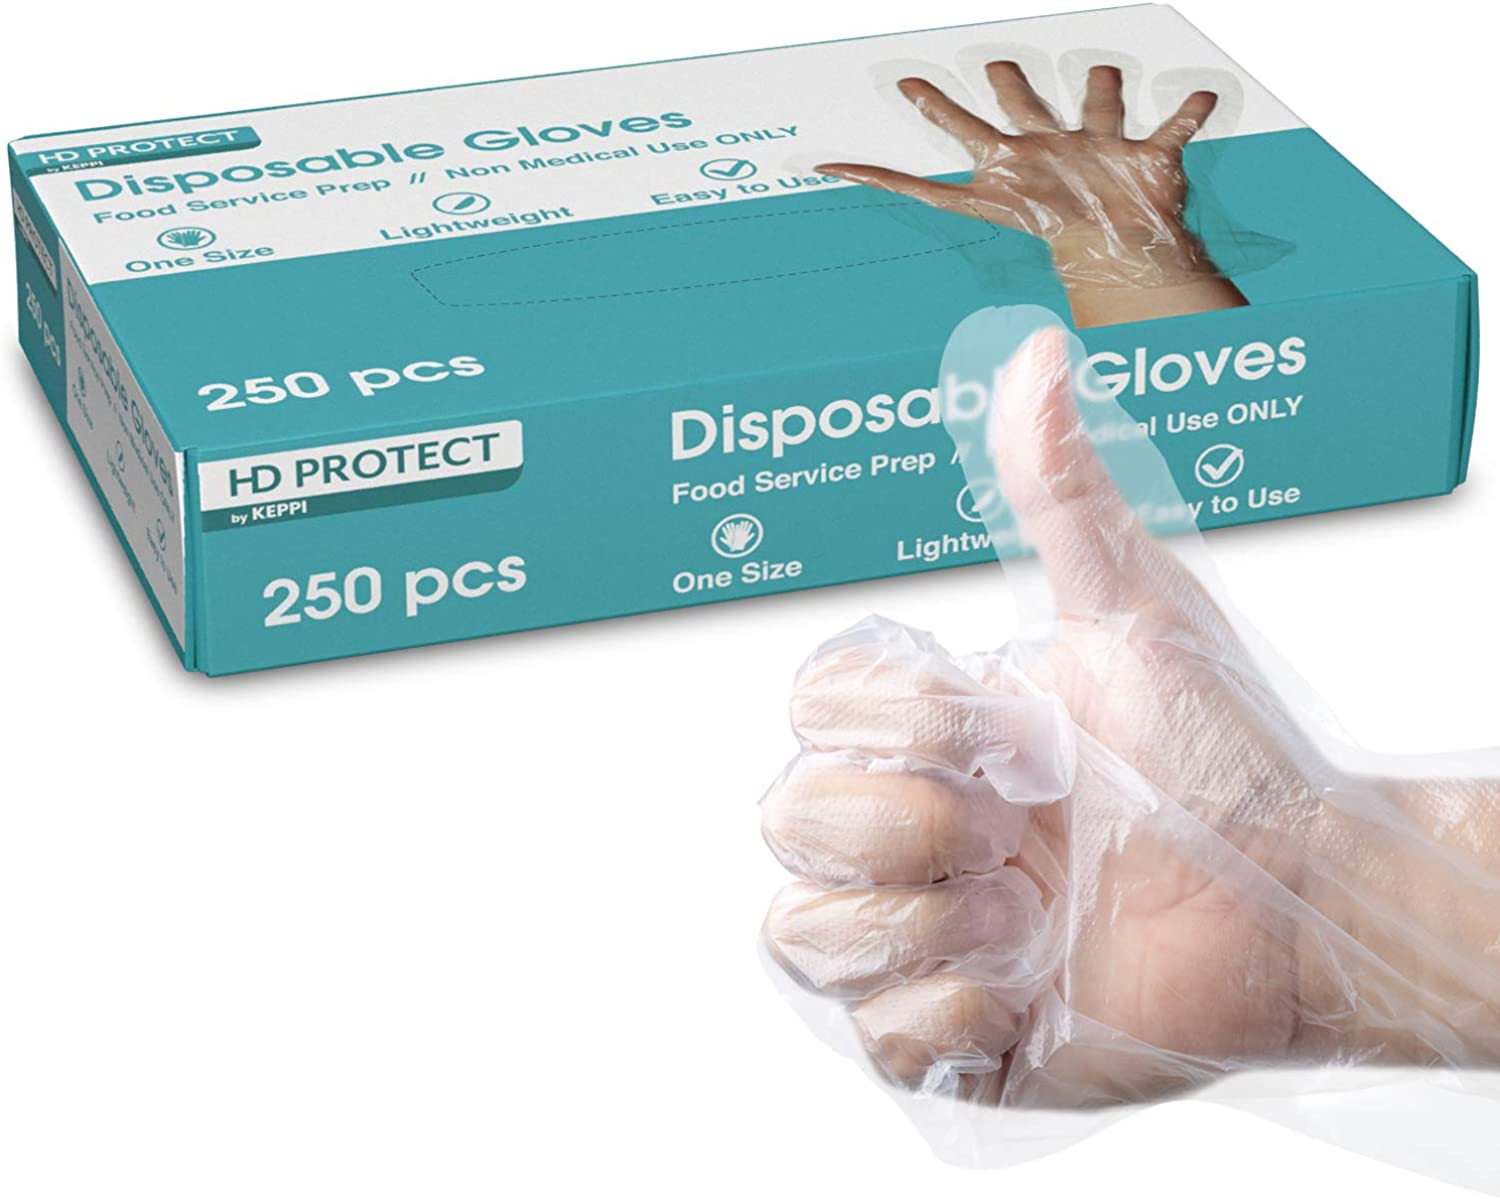 250 Pack Plastic Gloves - Best Value Food Prep Gloves Bulk Disposable Gloves Transparent Plastic Gloves for Food Service, Cleaning, Food Handling, Shared Spaces One Size Fits Most